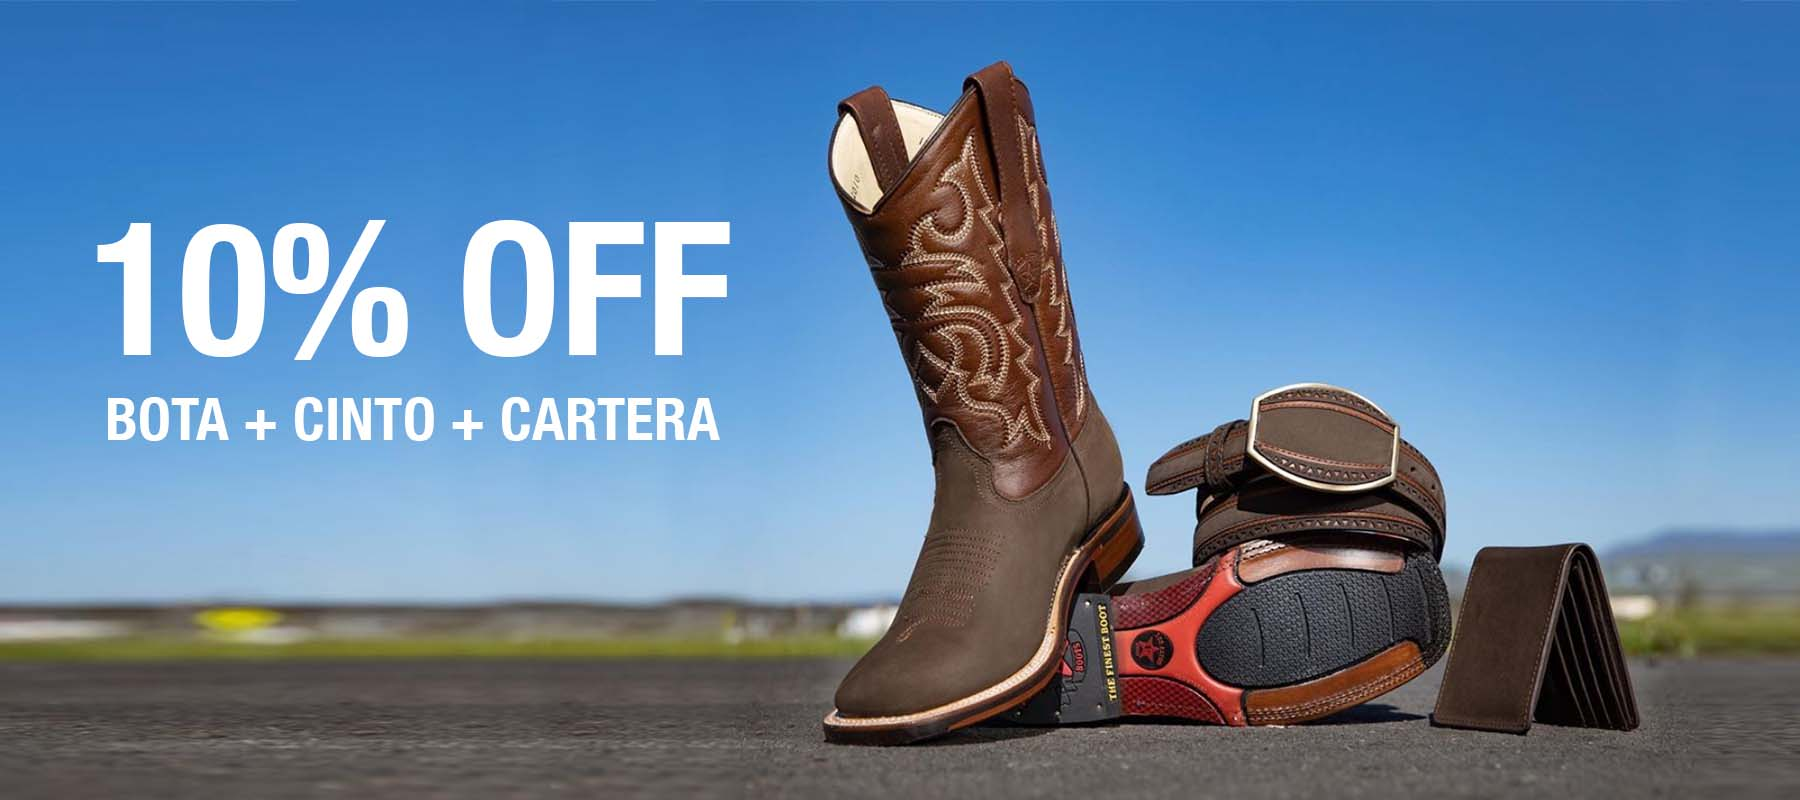 10% OFF | Botín + Cinto + Cartera